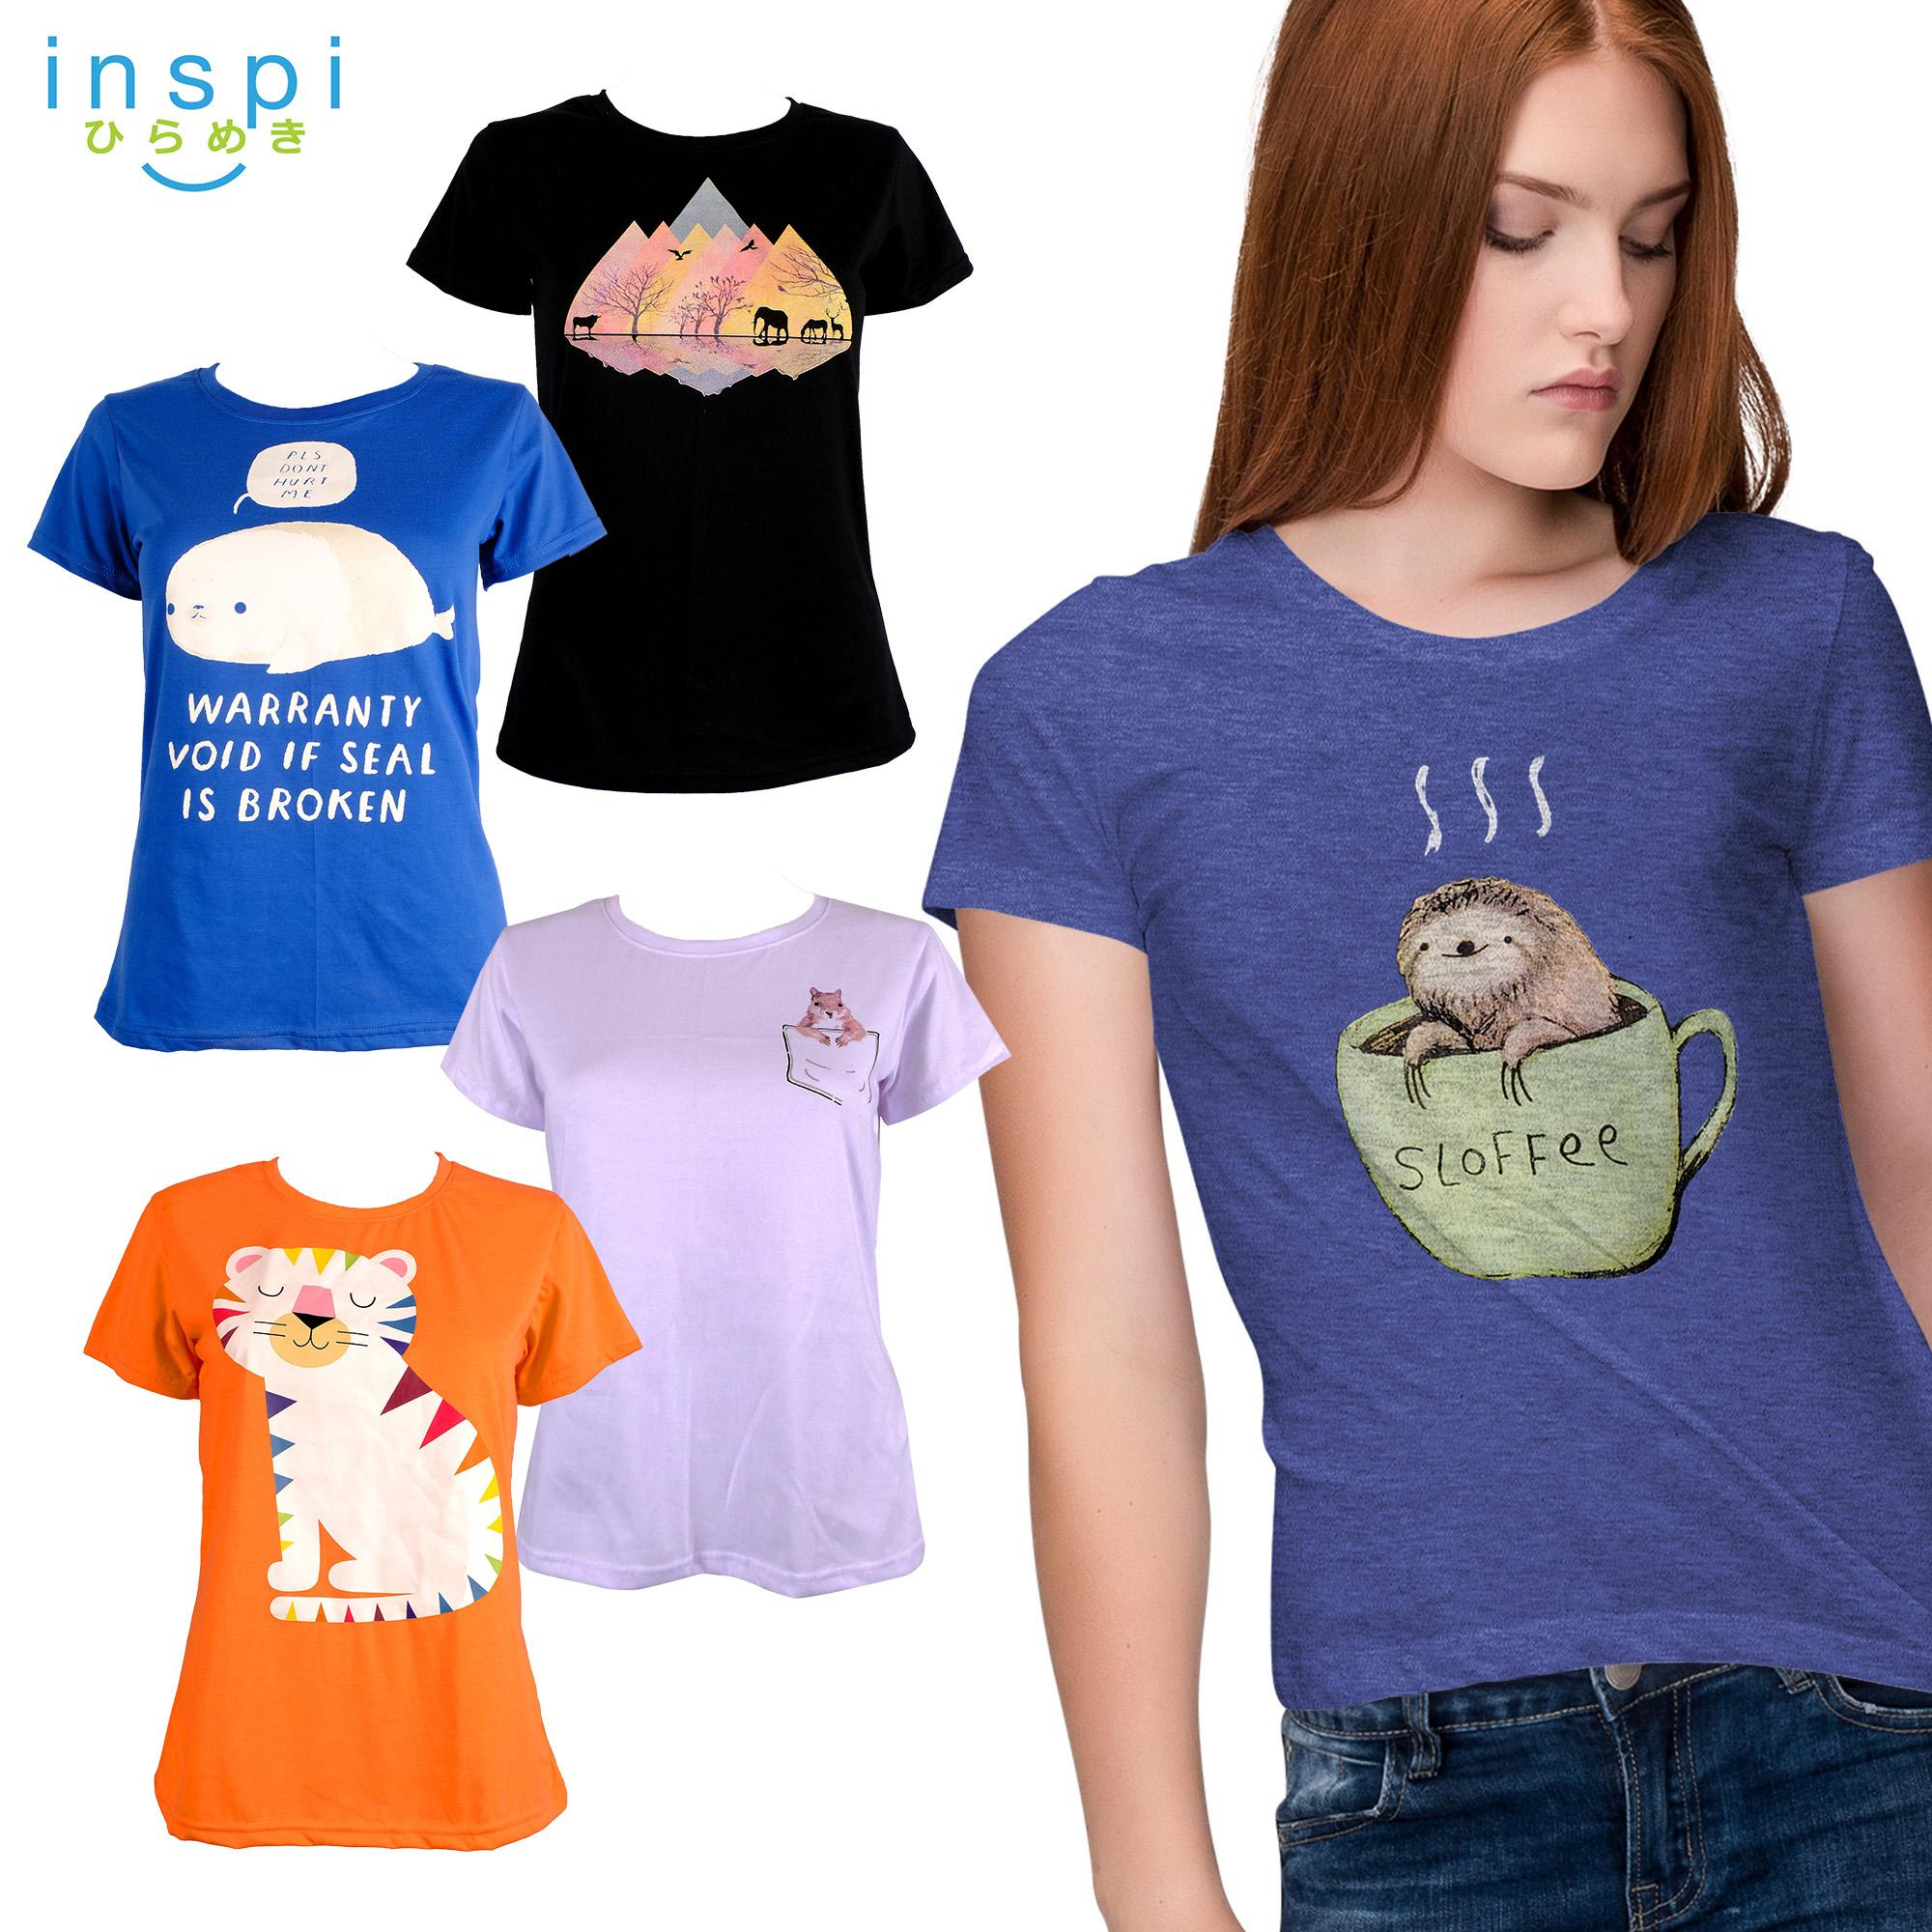 b5bc48920a8a INSPI Tees Ladies Pet Collection tshirt printed graphic tee Ladies t shirt  shirts women tshirts for women womens tshirt sale